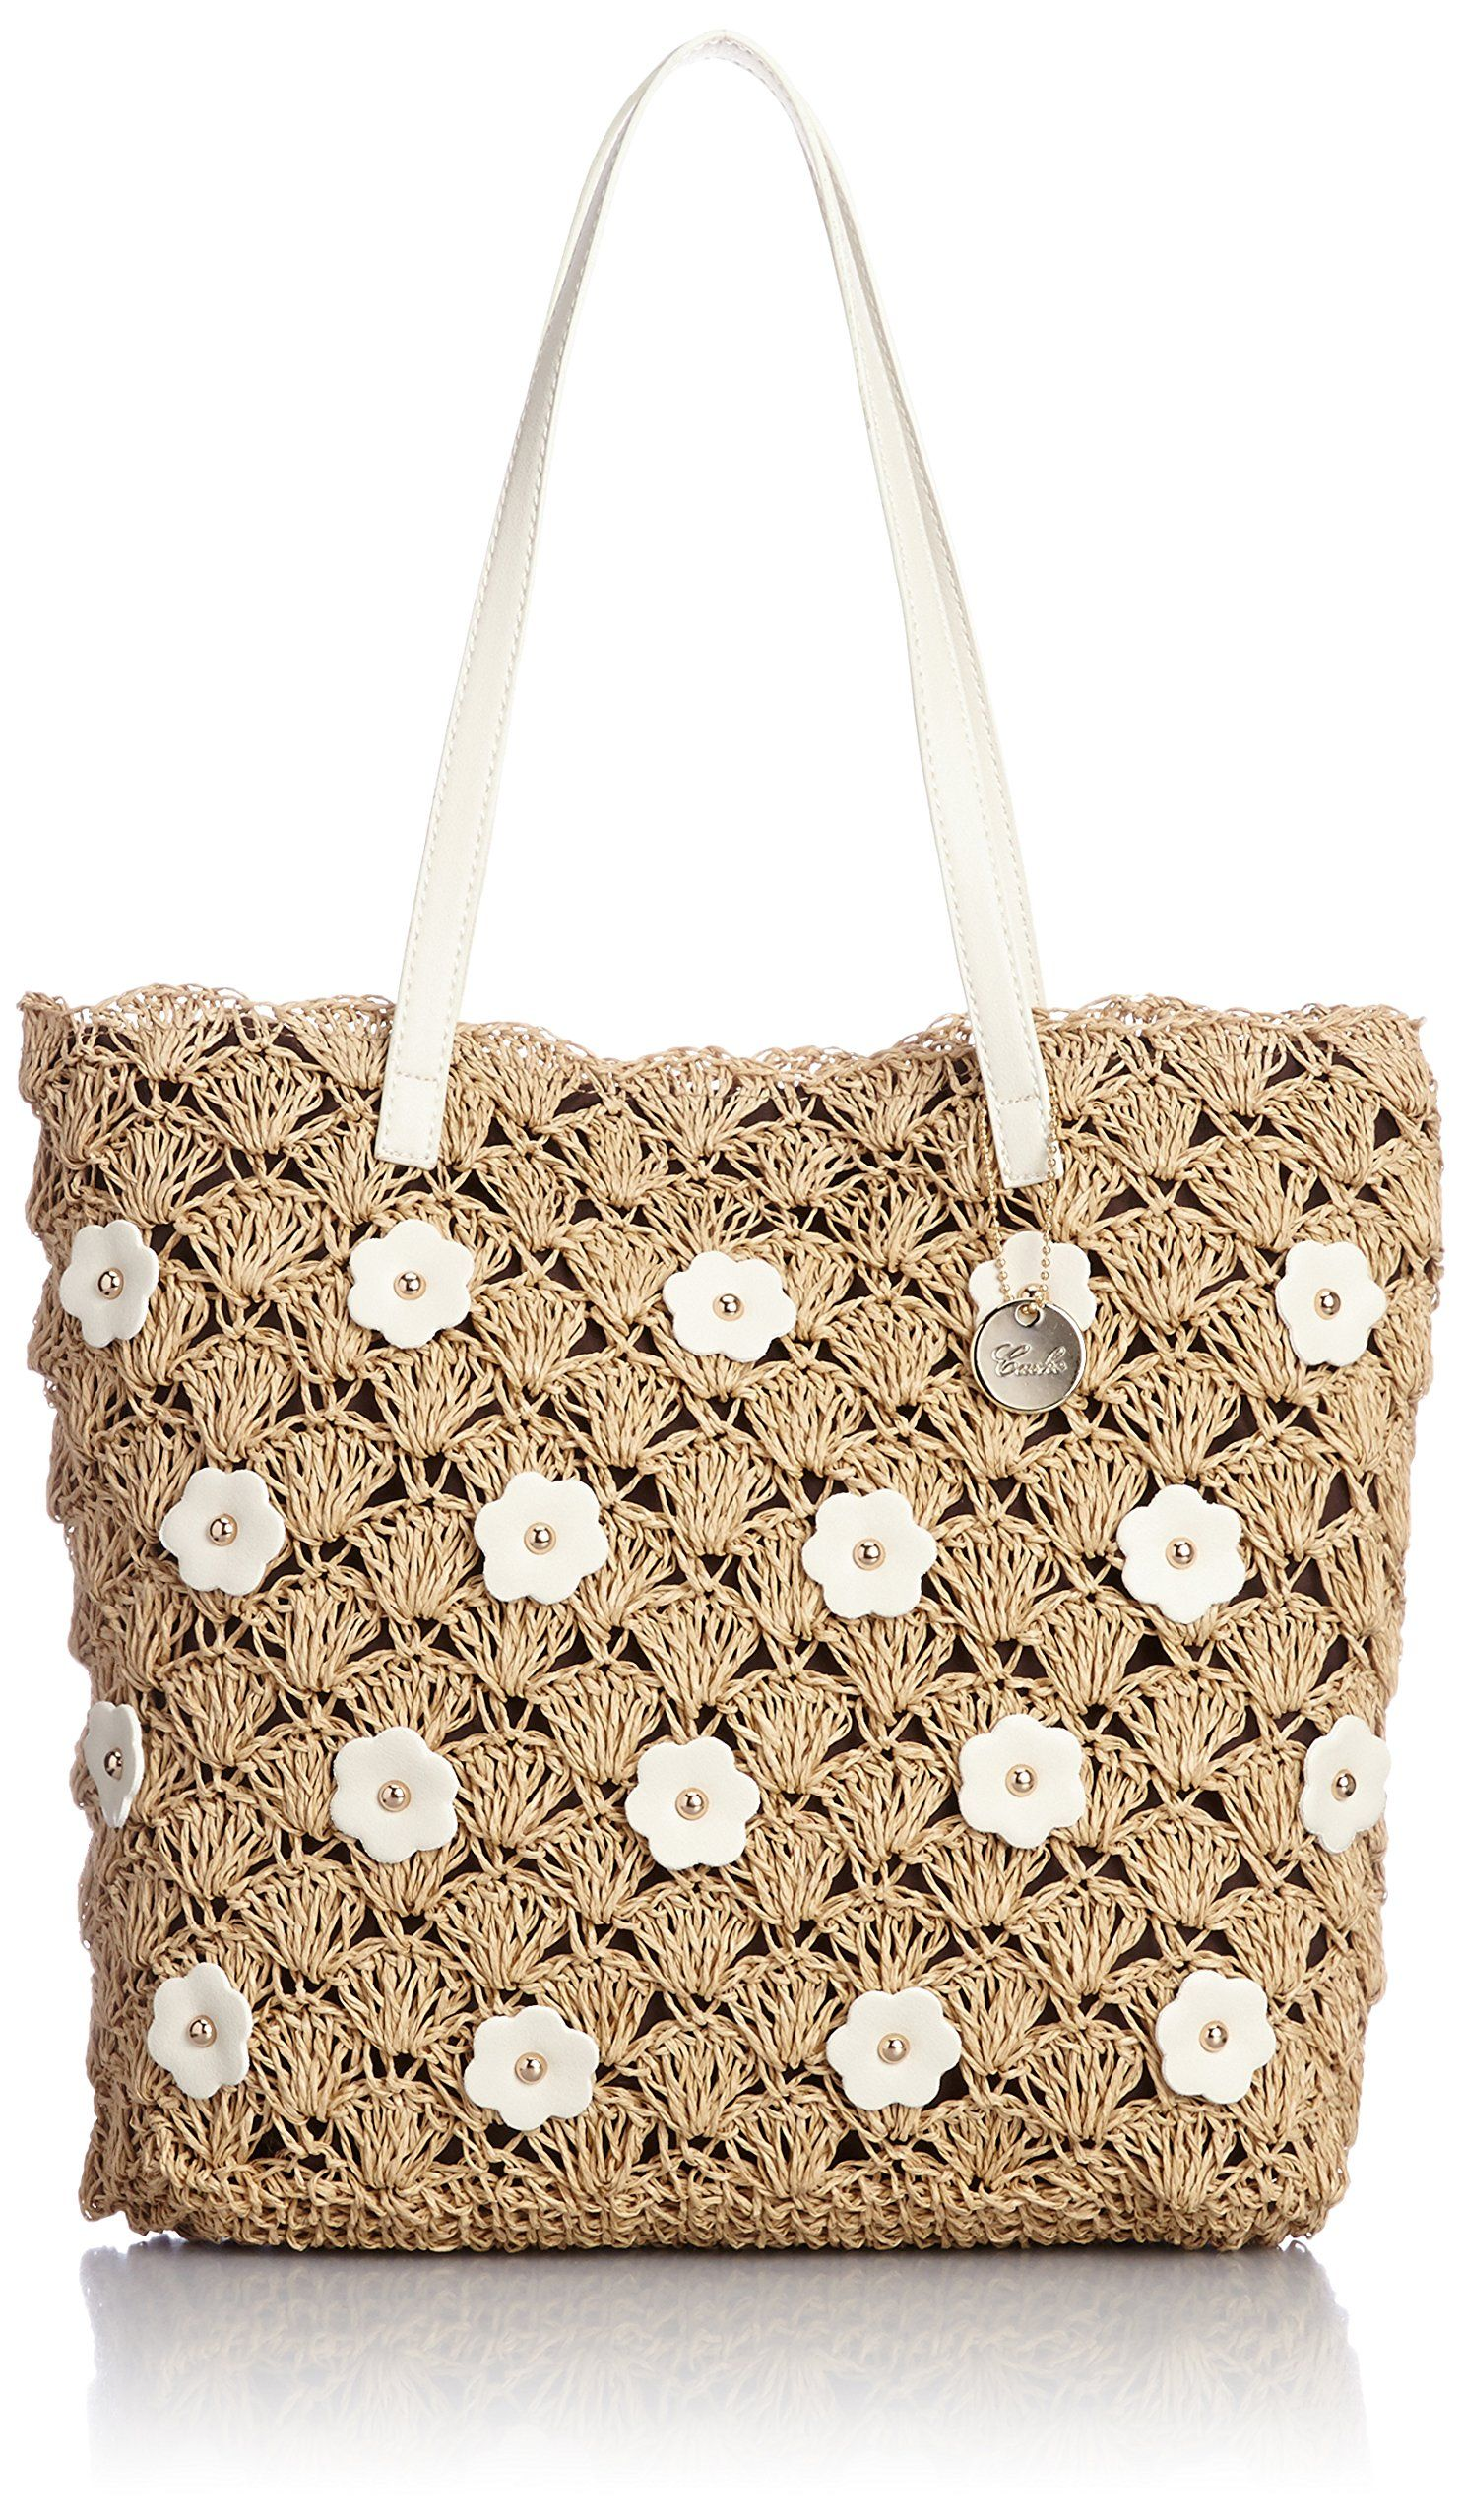 Cache Cache Crochet Bag Crochet Modelos Pinterest Crocheted